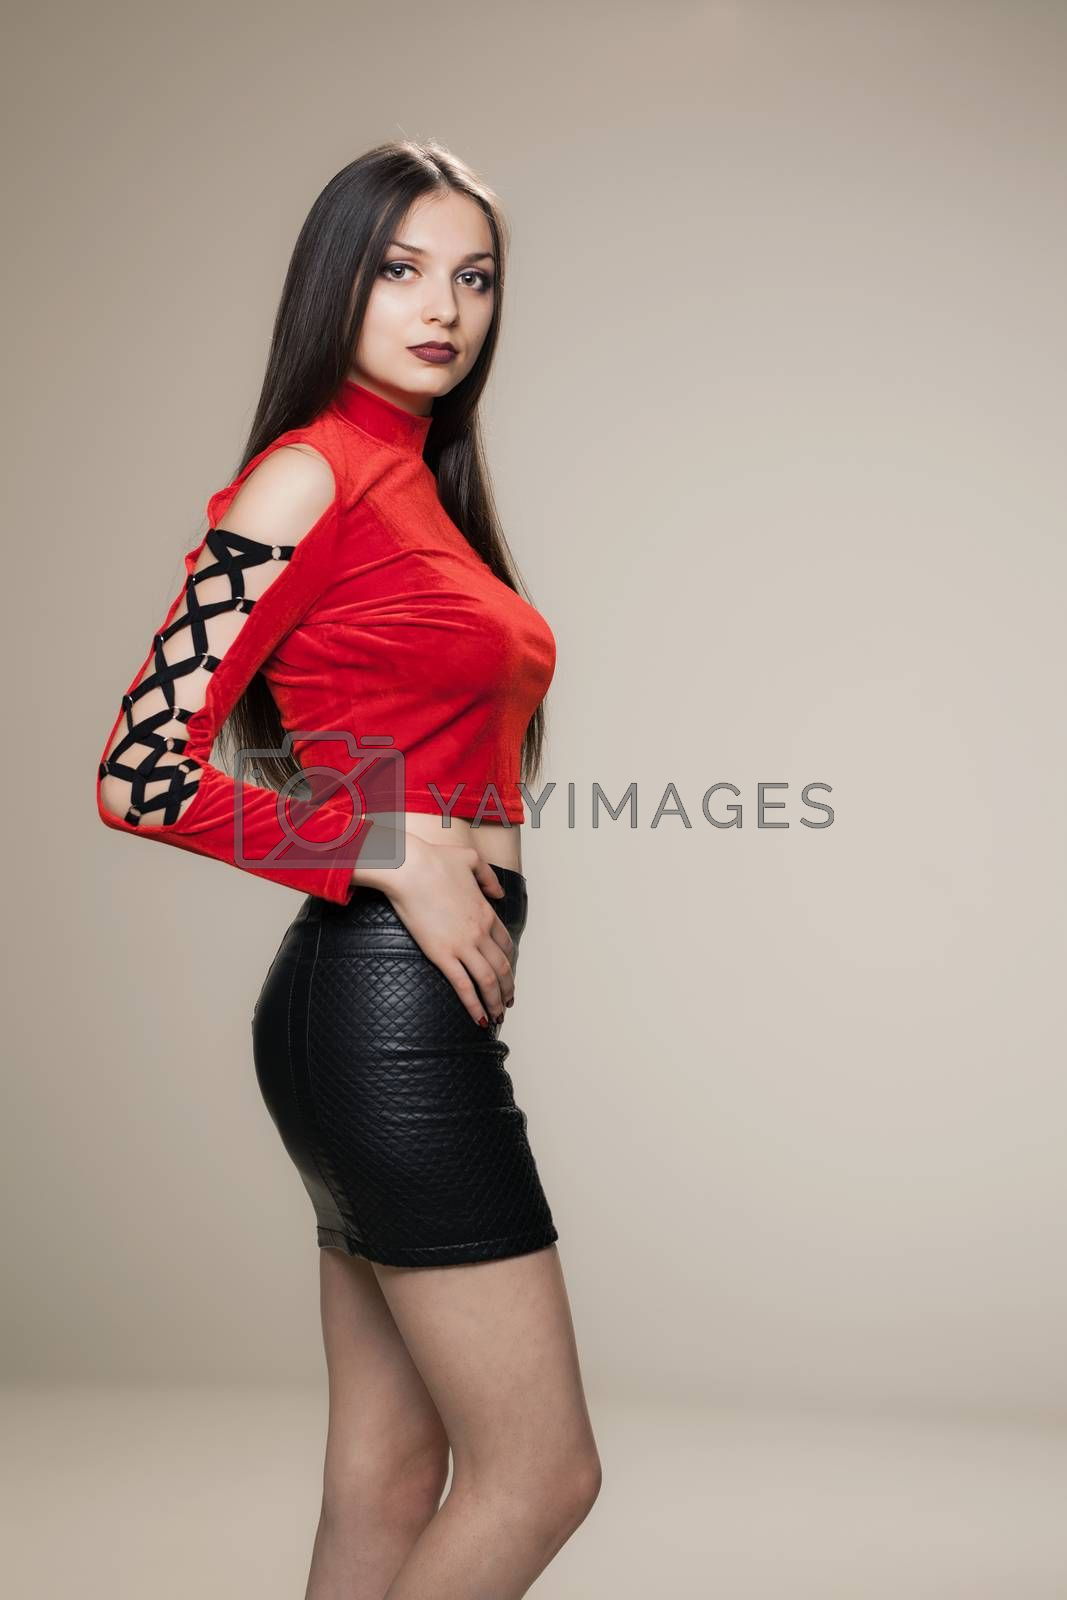 gothic style girl posing in studio wearing a red shirt and black short dress